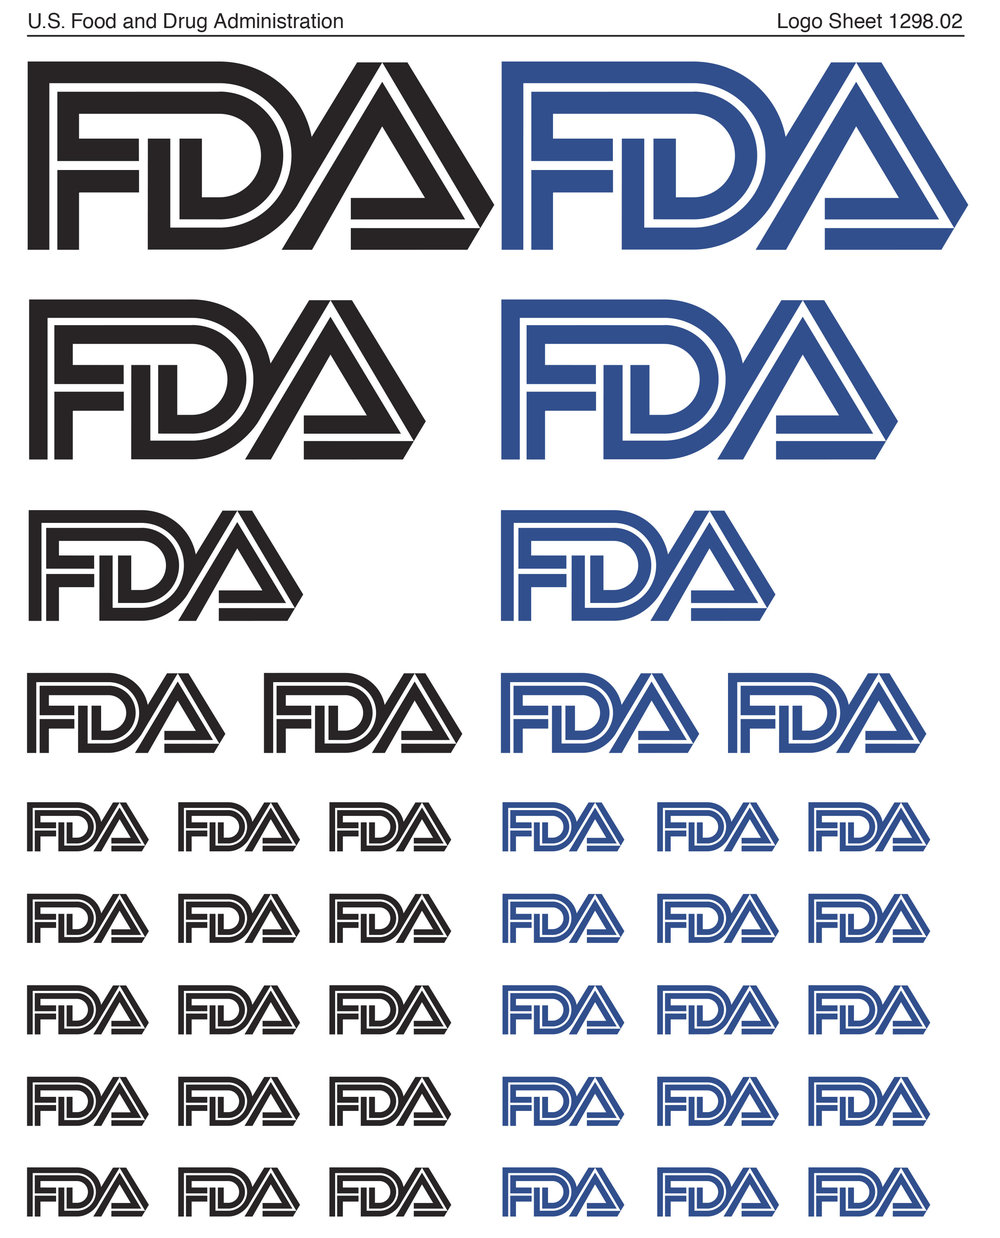 Offical Logo of the U.S. Food and Drug Administration